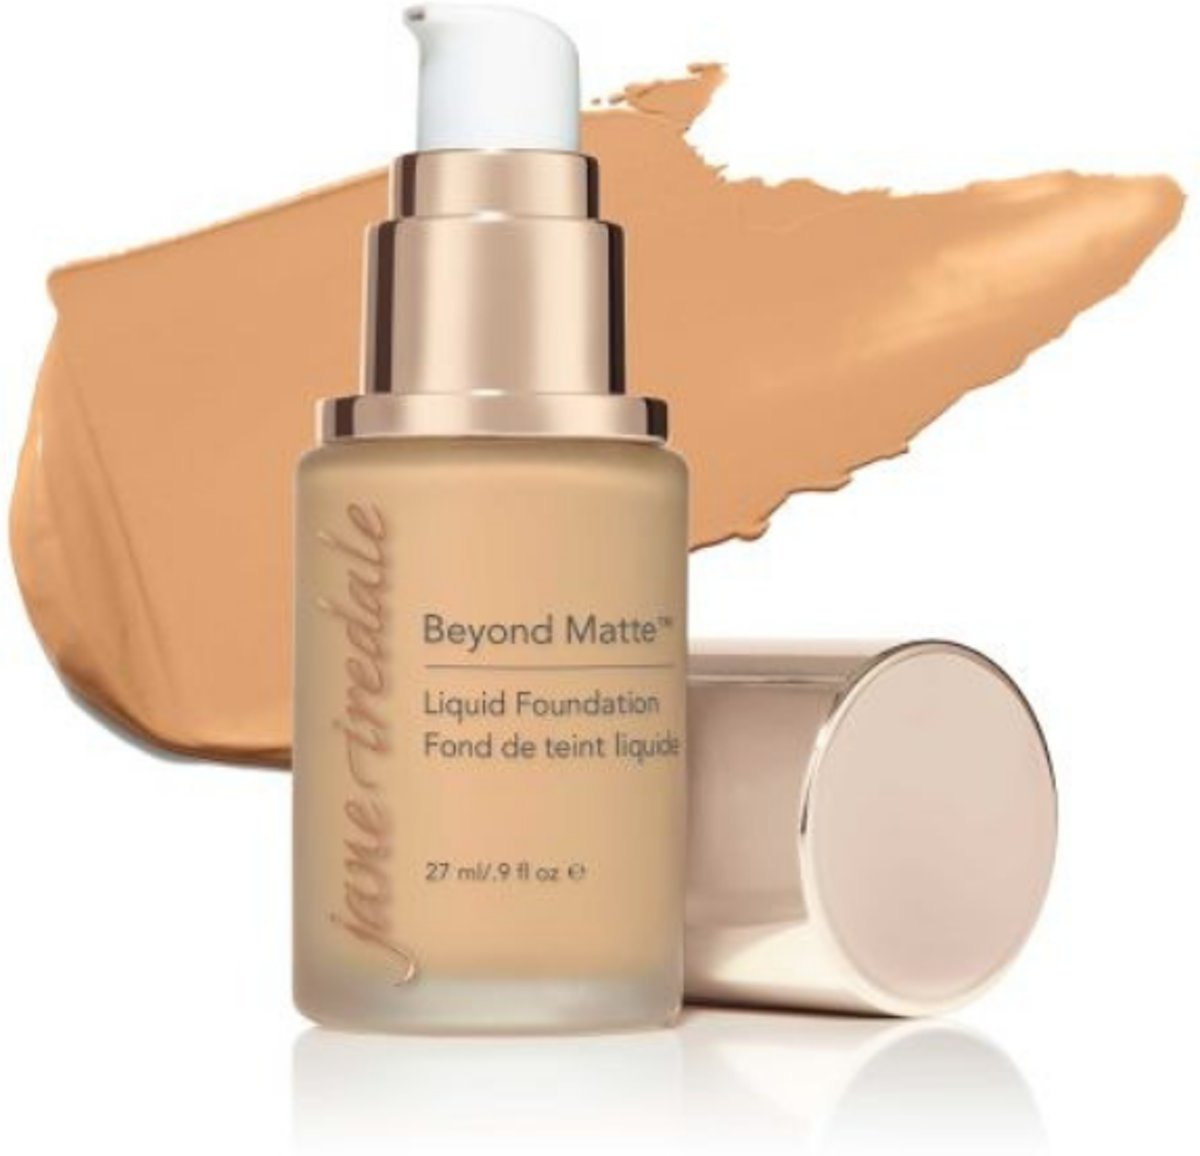 Jane Iredale Beyond Matte Liquid Foundation